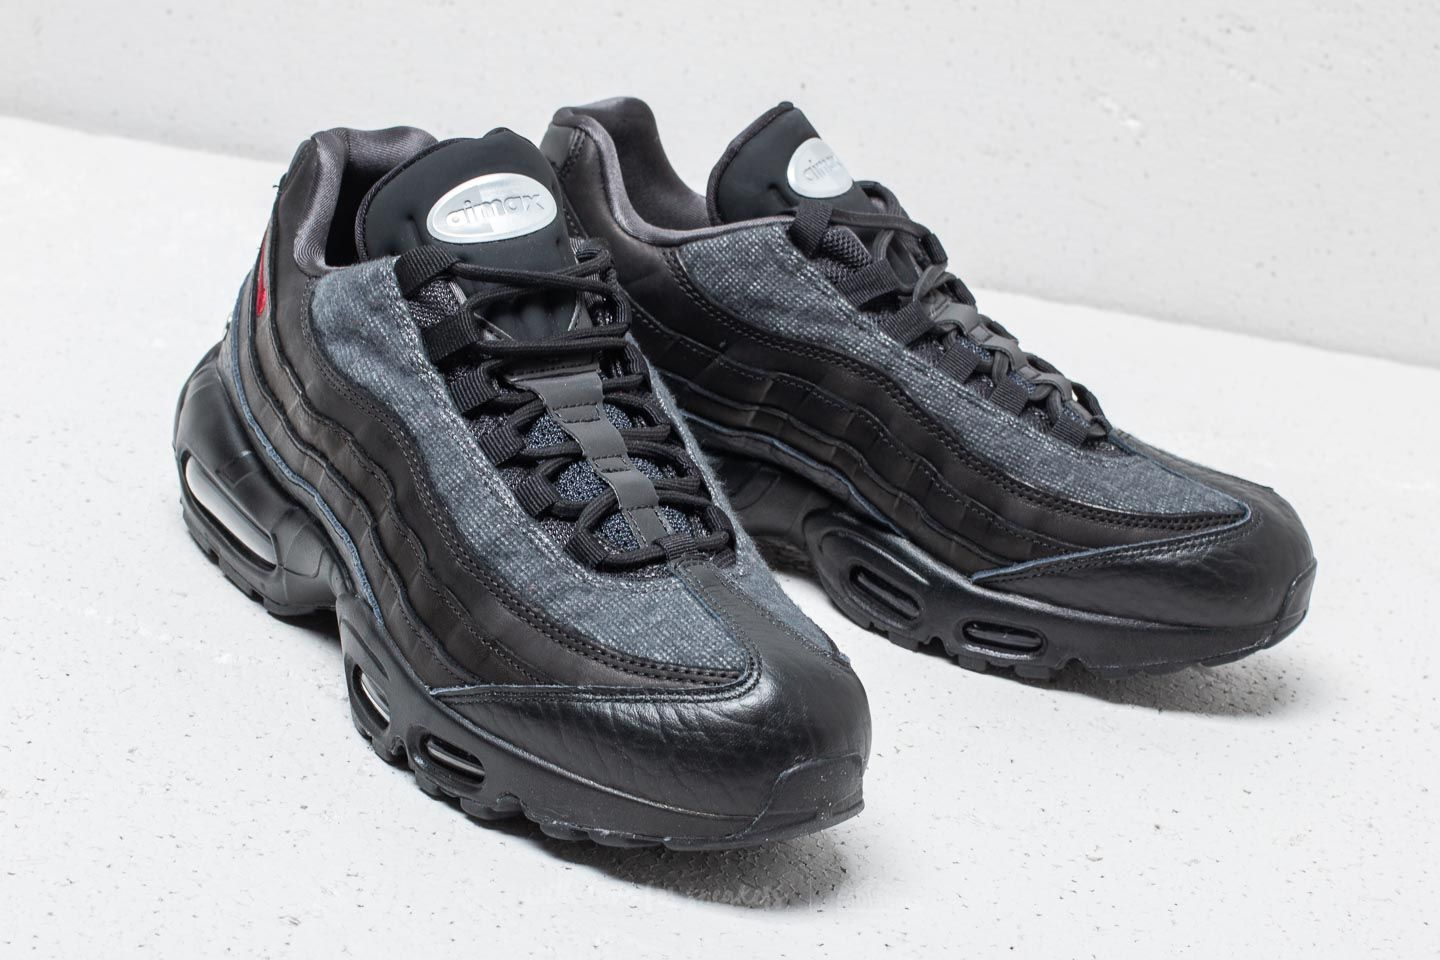 Nike Air Max 95 NRG Black Team Red Anthracite | Footshop